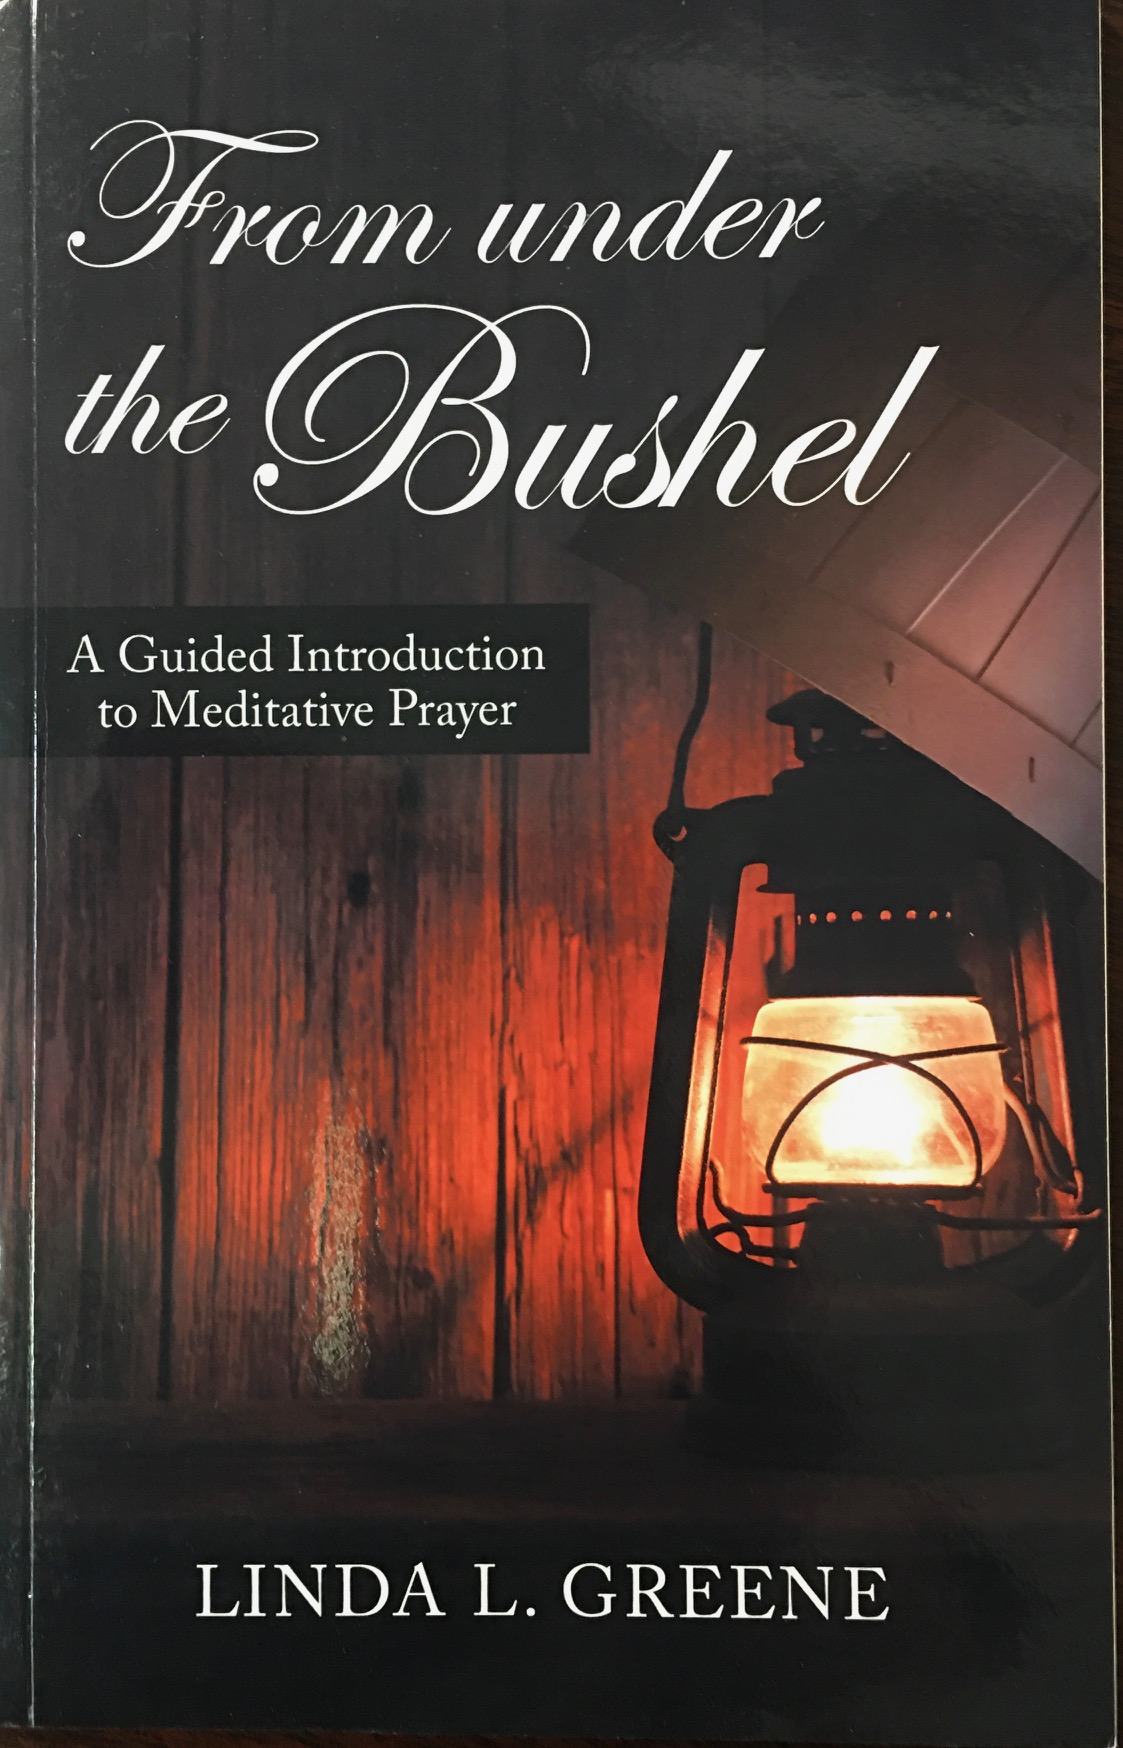 Image for From under the Bushel: A Guided Introduction to Meditative Prayer